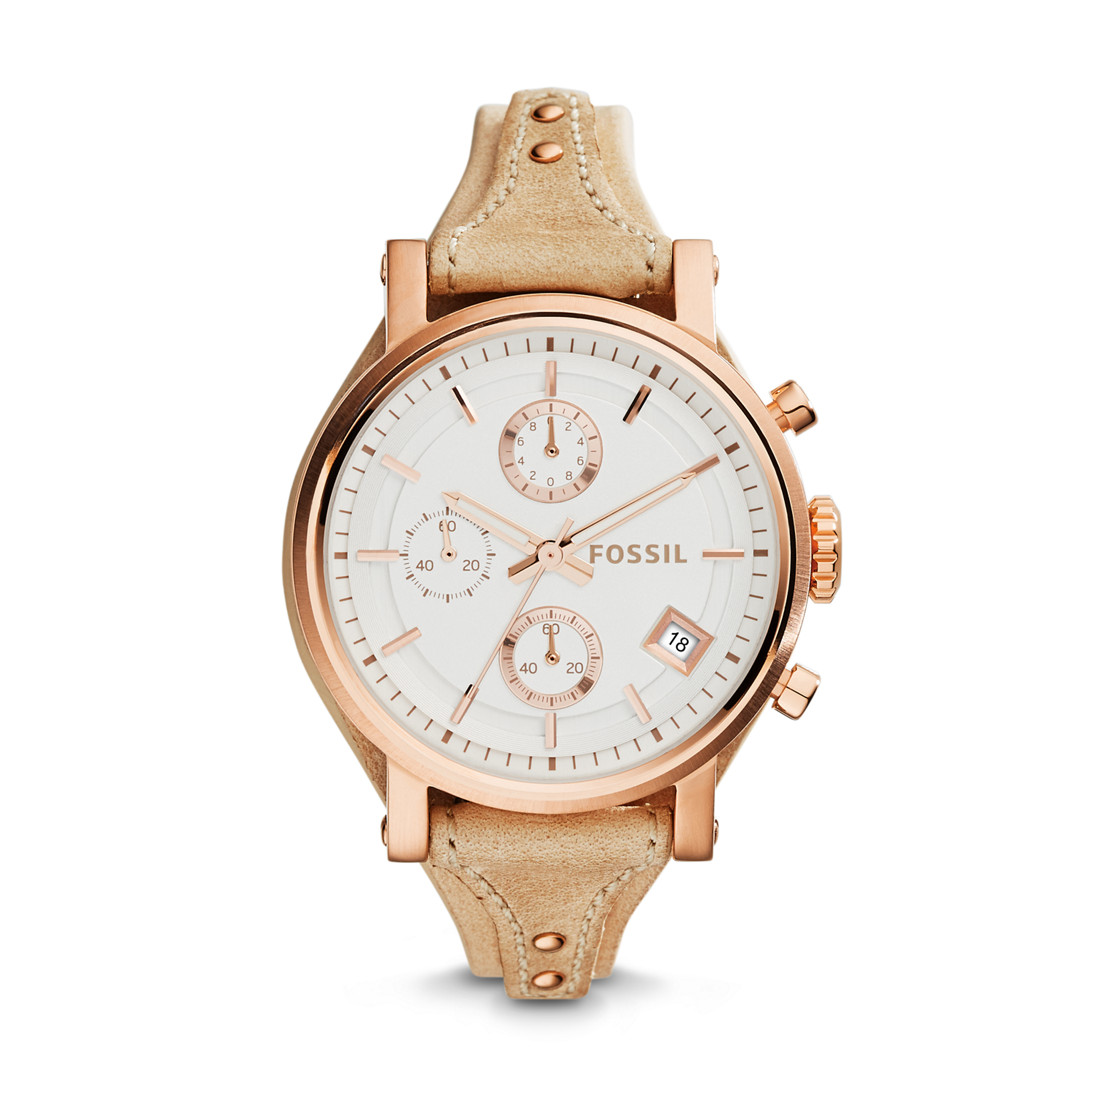 Original Fossil Watches By Geniehour Jam Set Womens Es3748 Leather Watch Rm55000